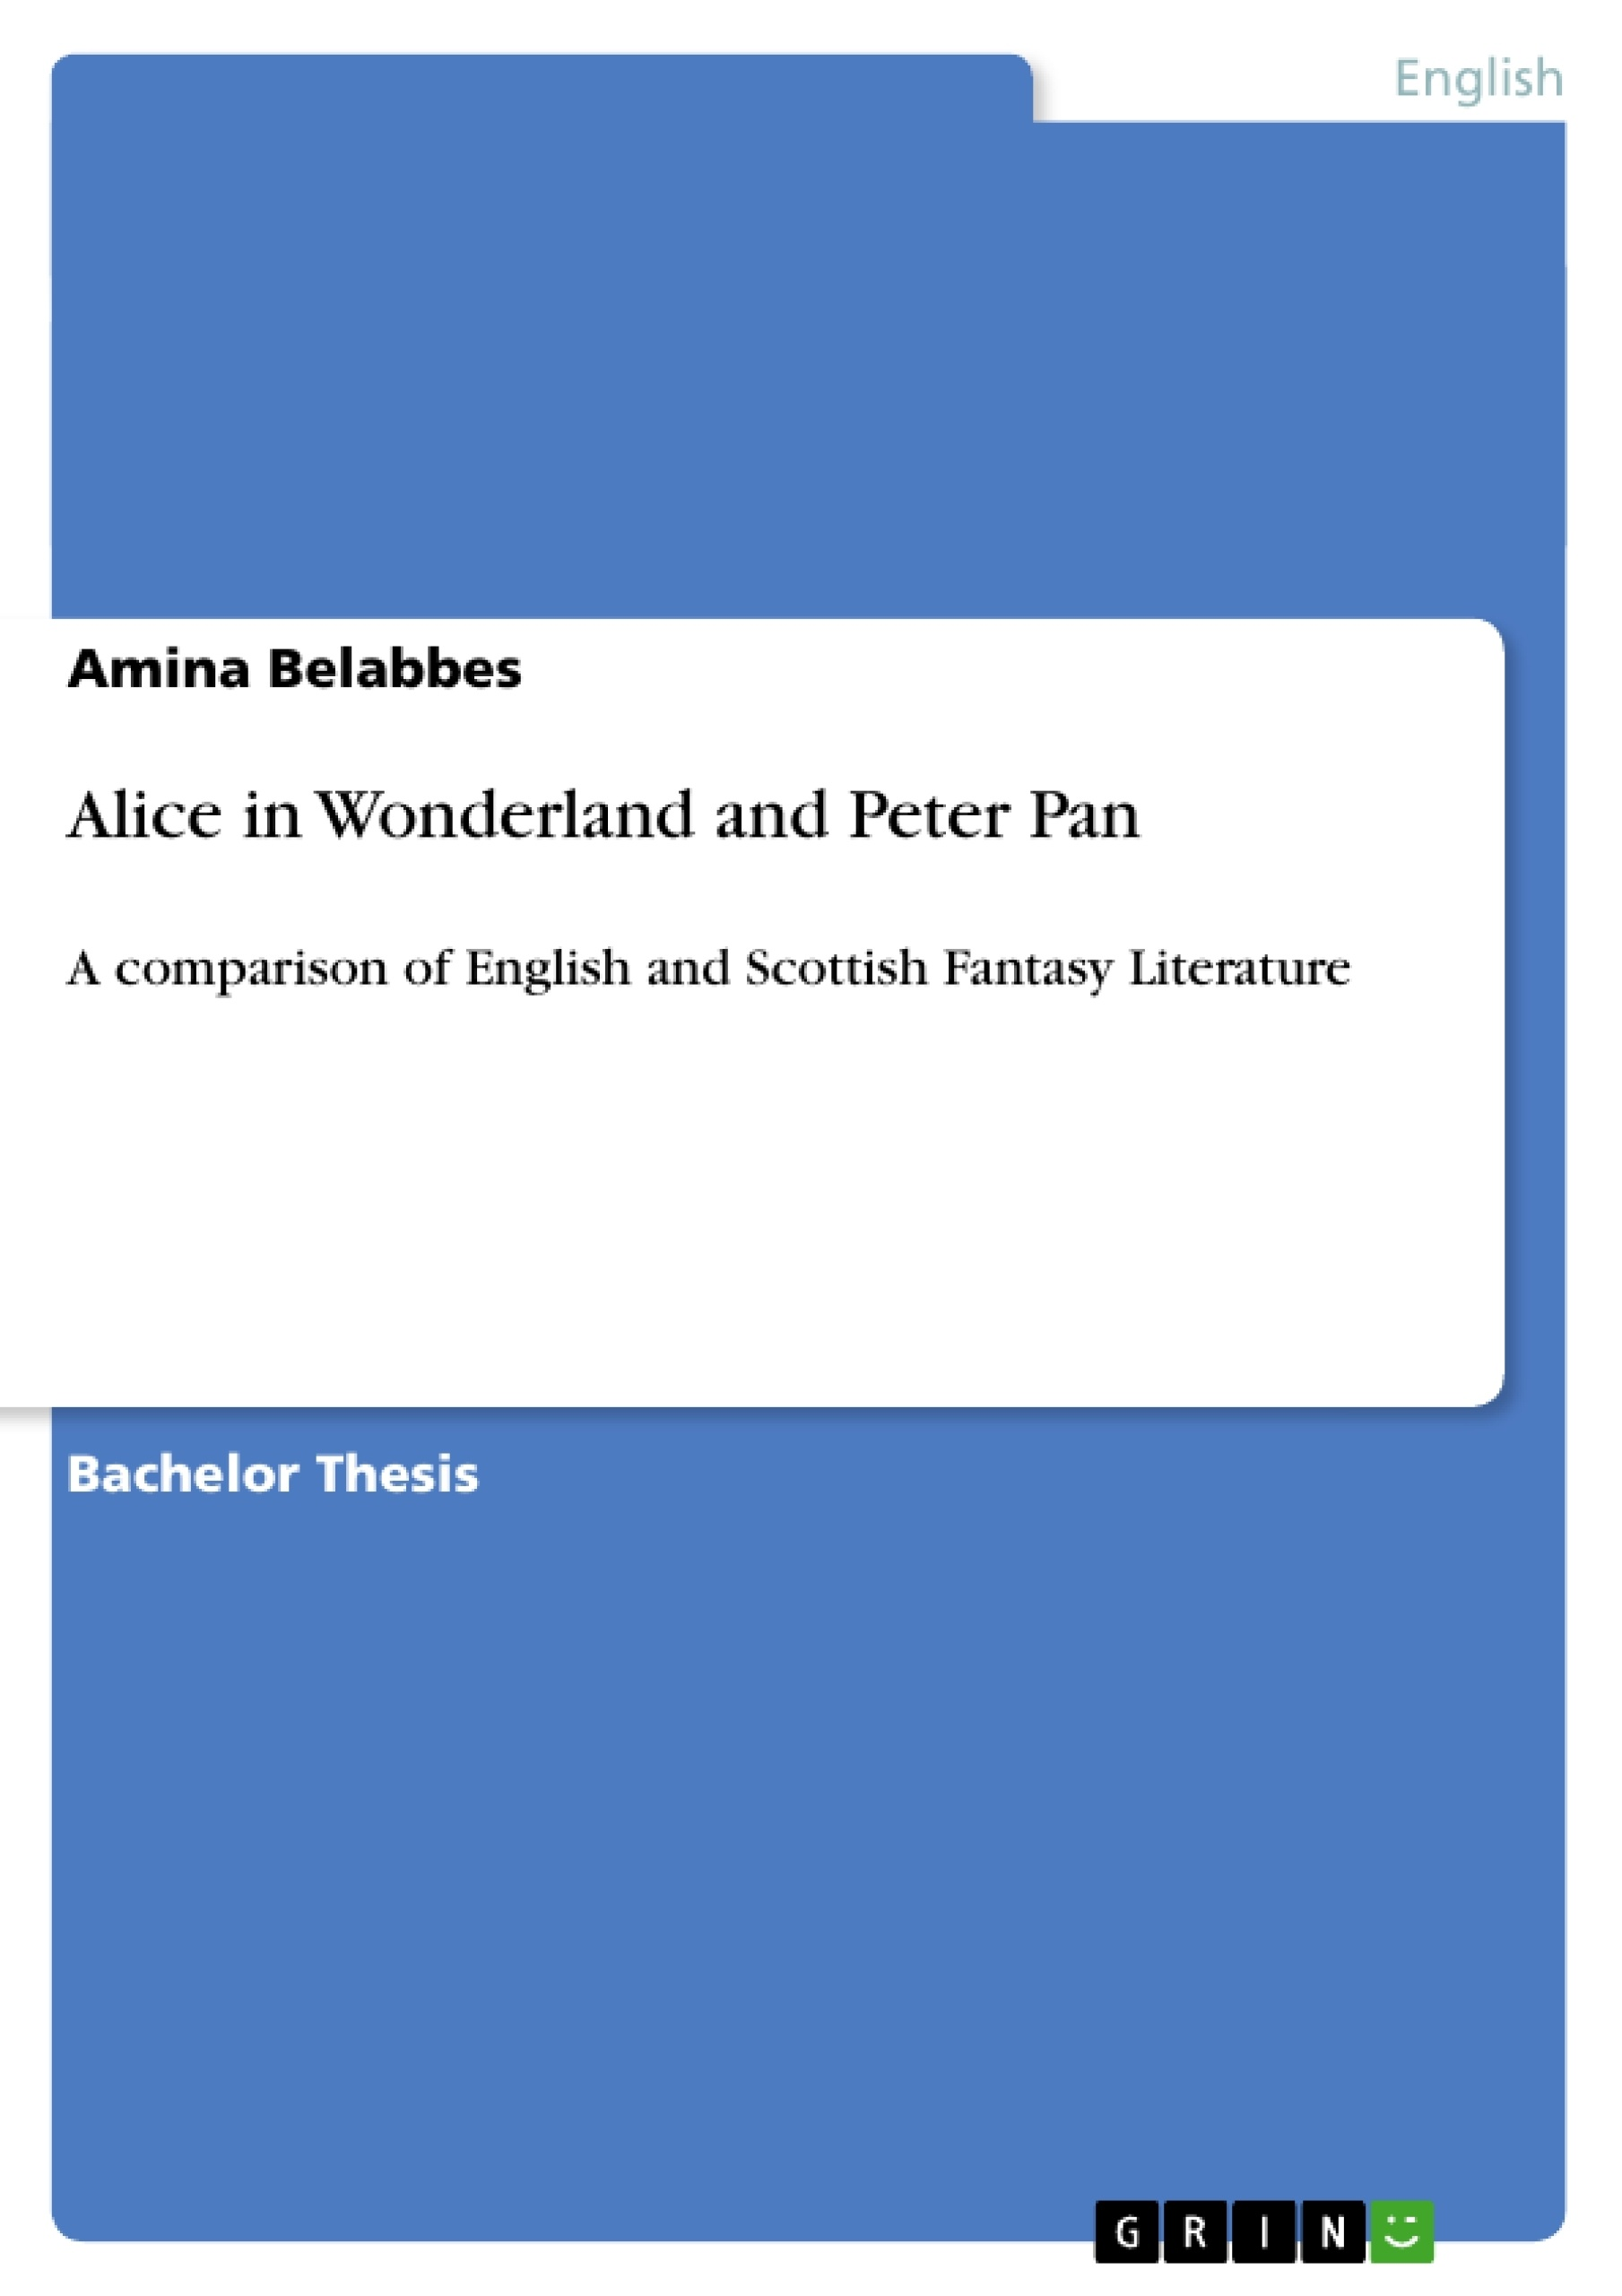 Title: Alice in Wonderland and Peter Pan